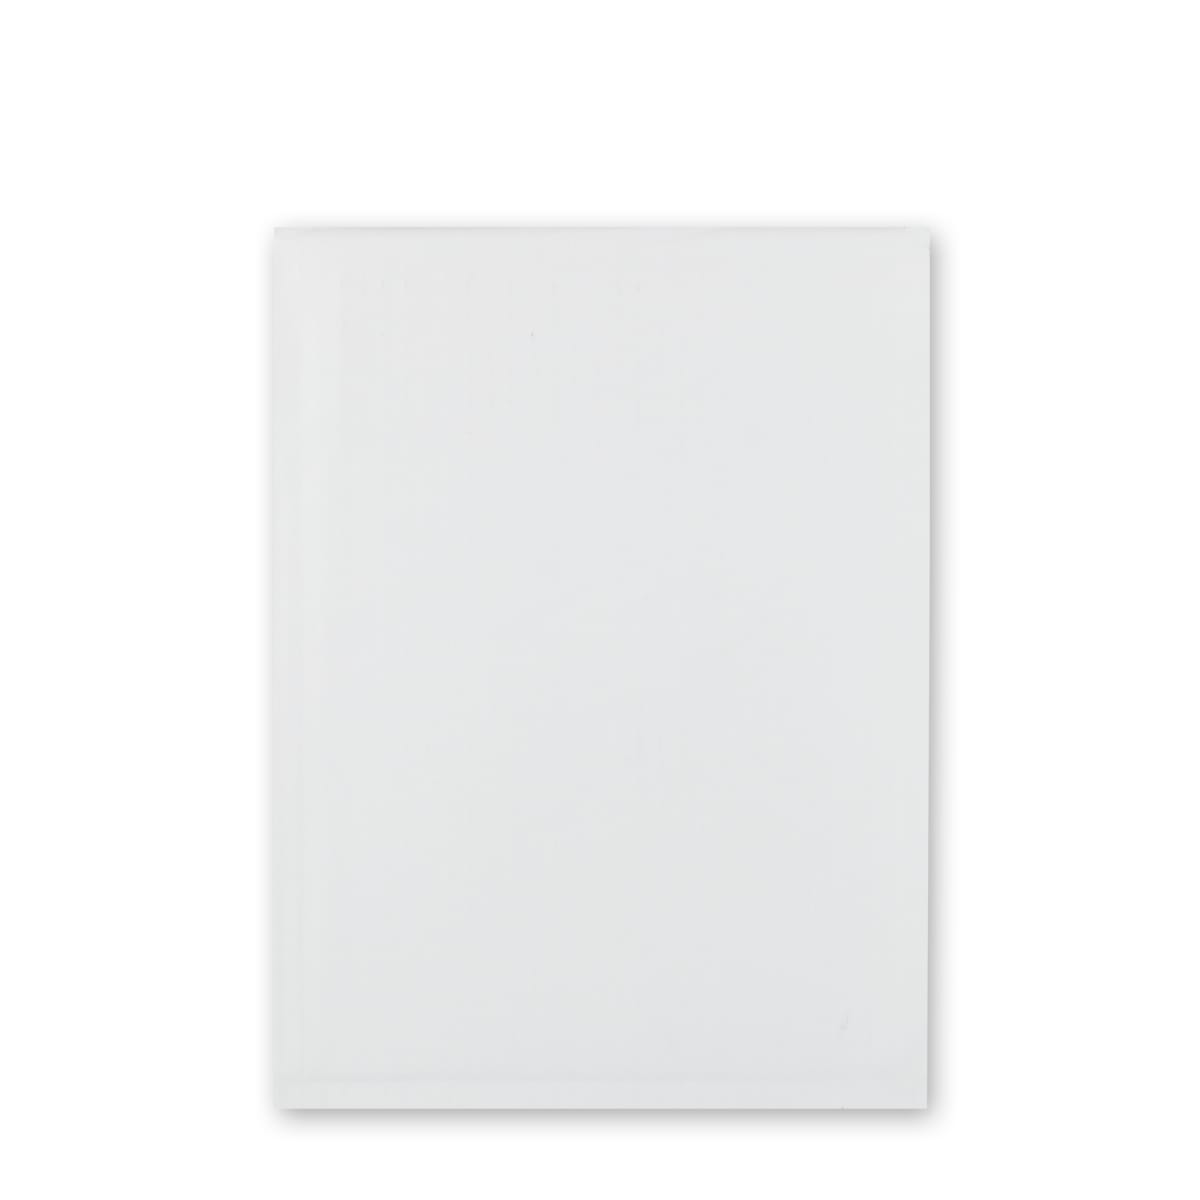 265 x 180mm WHITE PAPER PADDED ENVELOPES